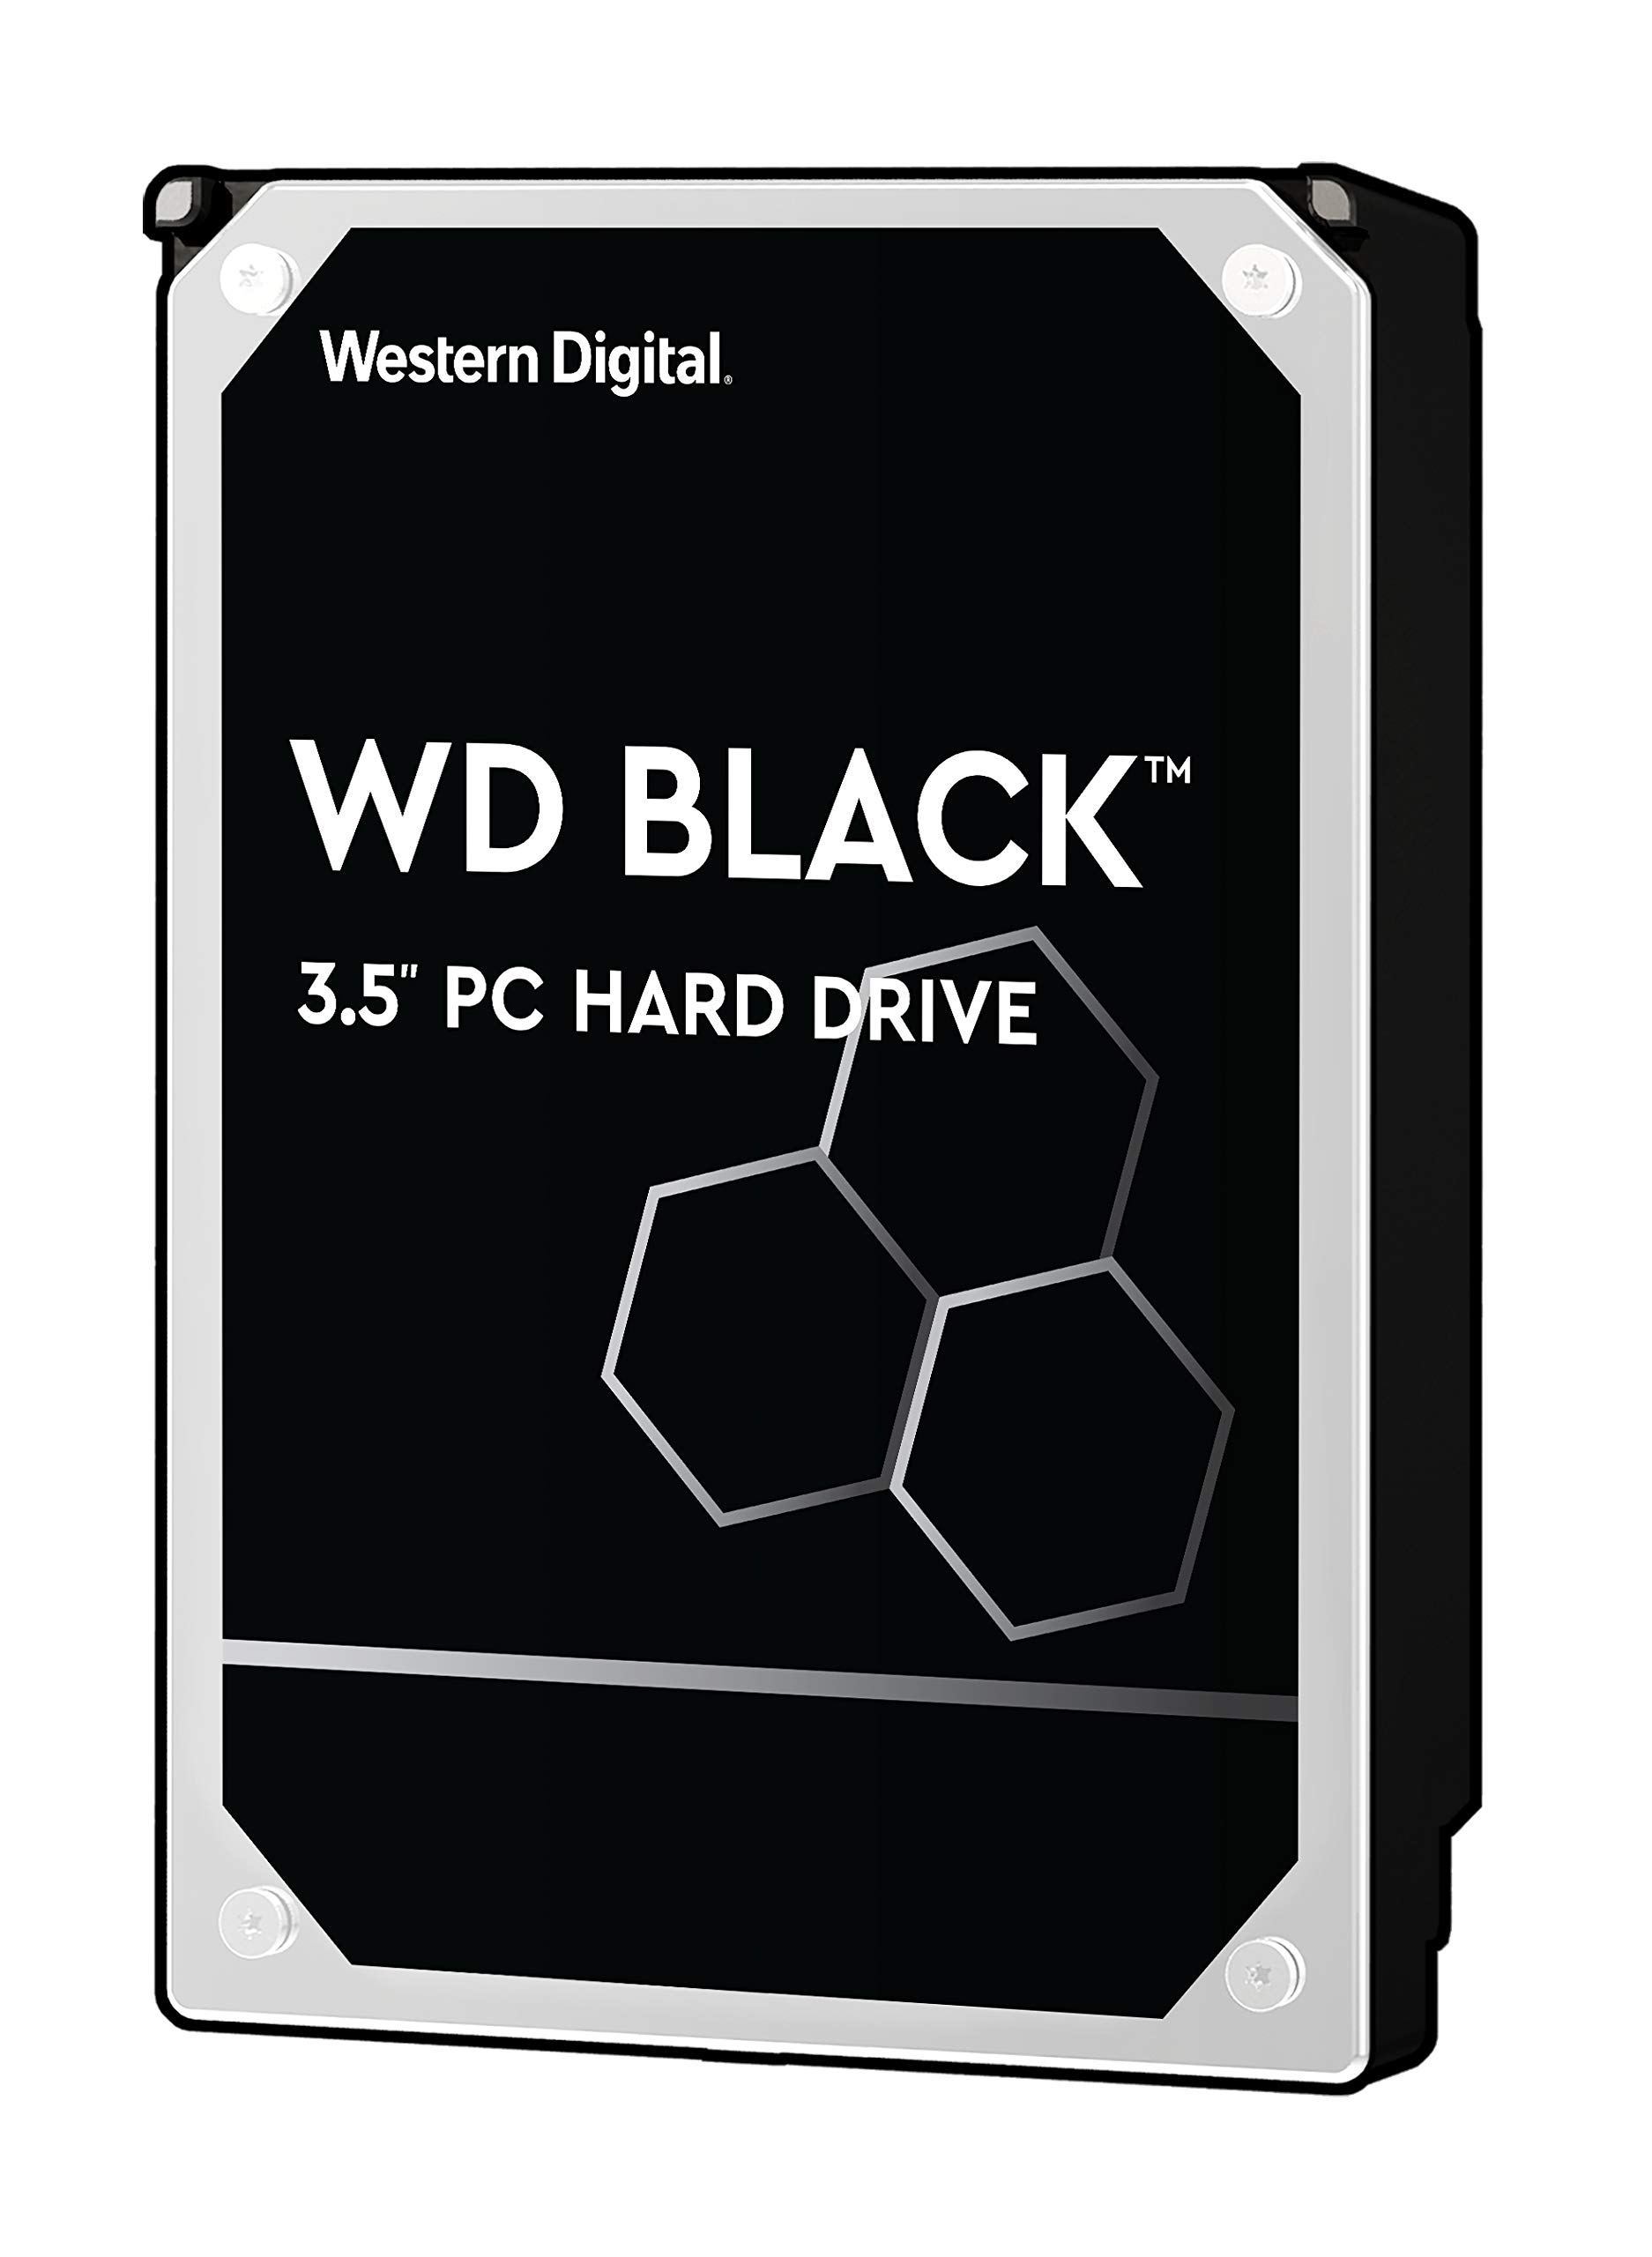 Black Performance Desktop Hard Drive